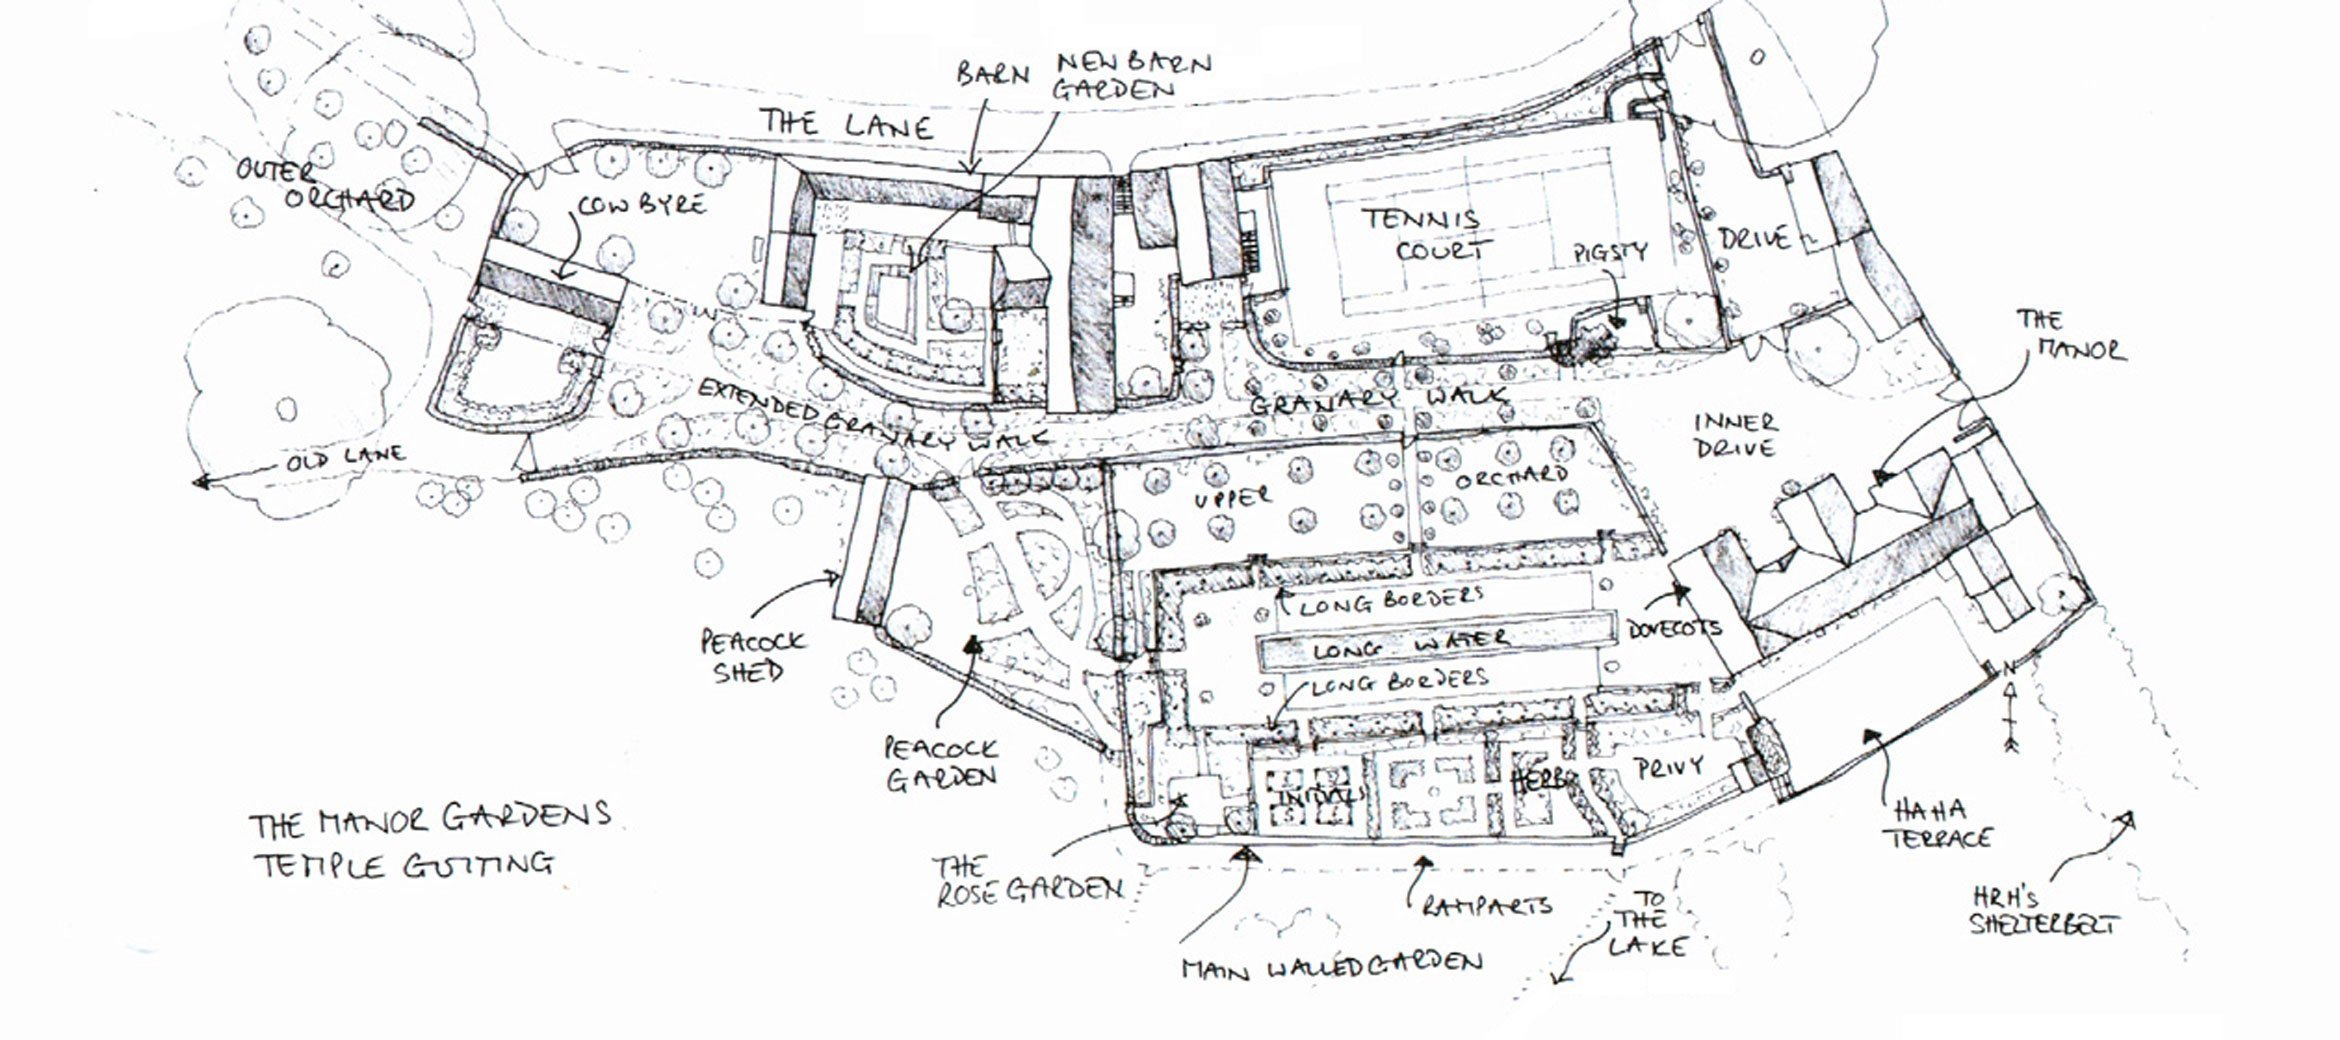 View the floorplan of Temple Guiting Barn & Cottage